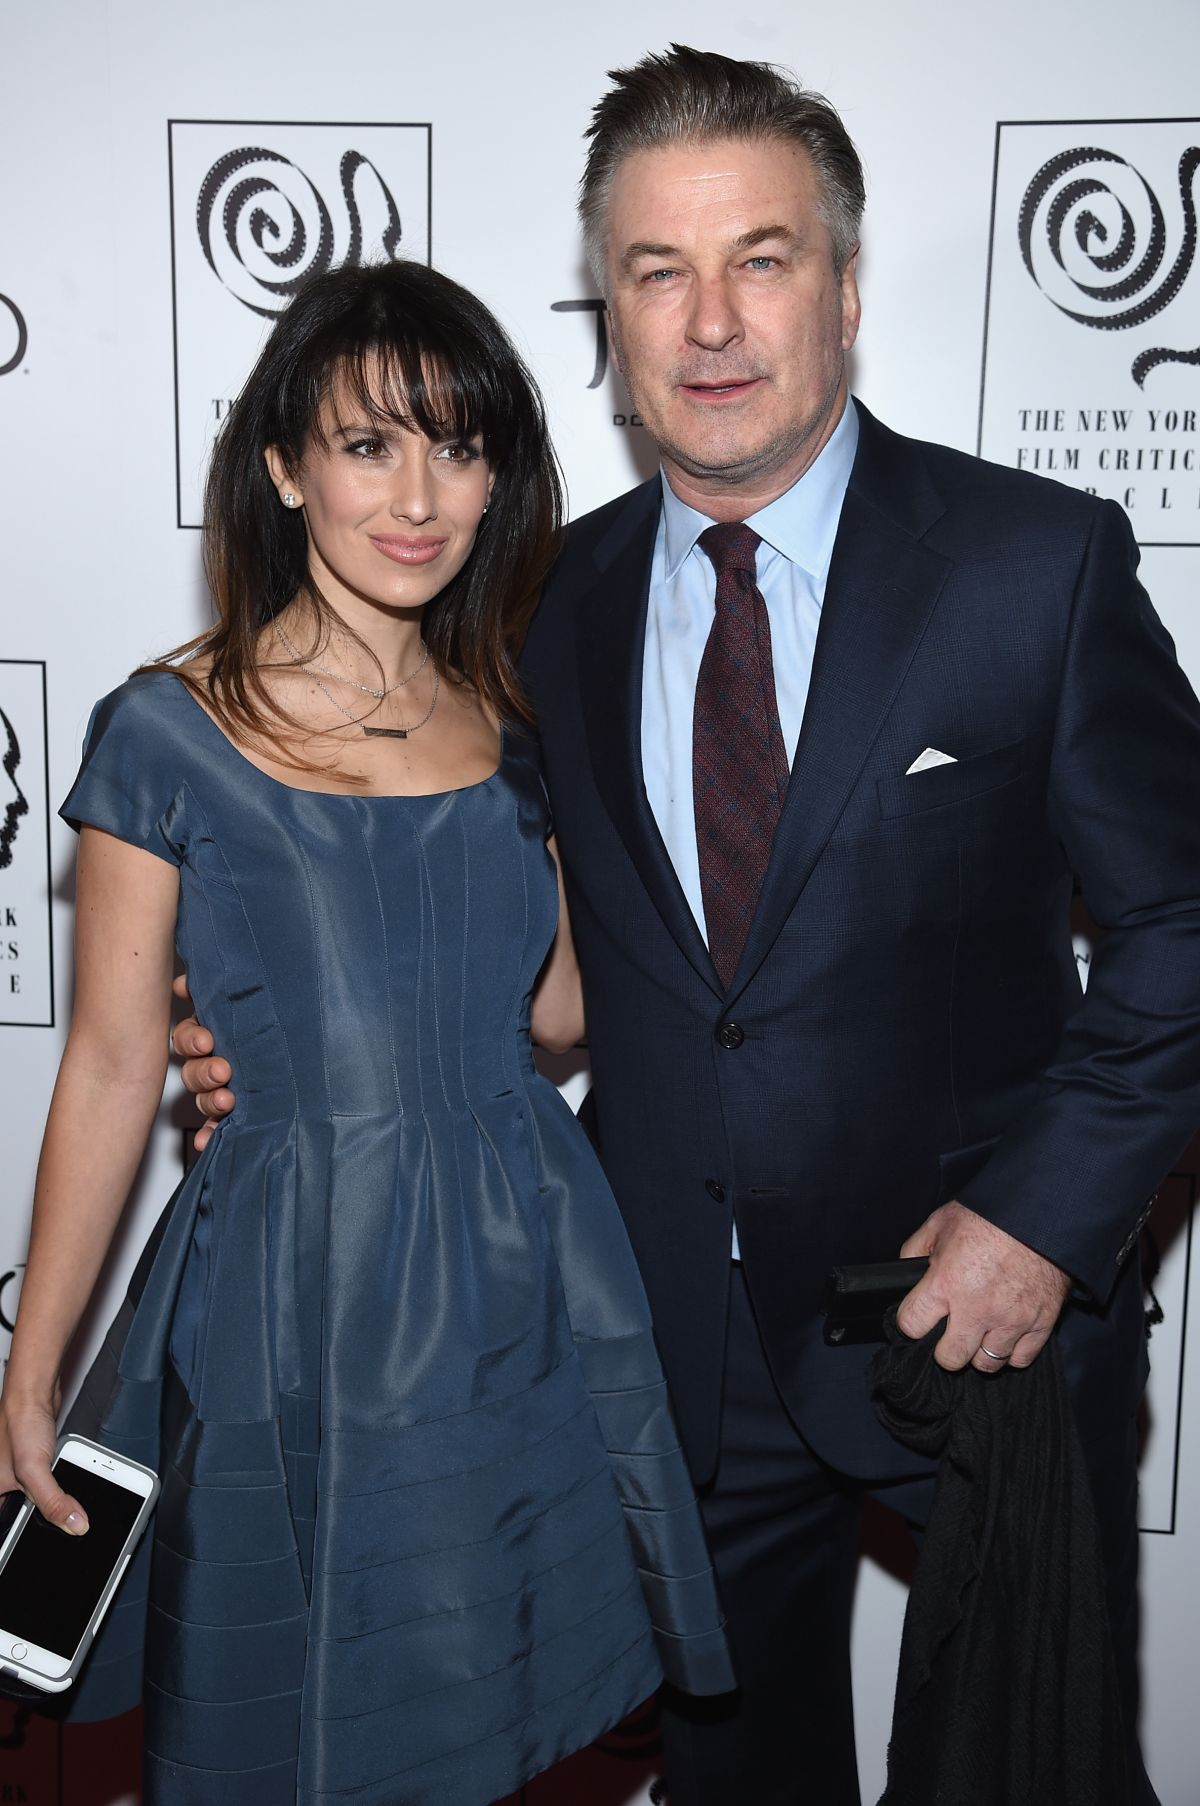 HILARIA BALDWIN at 2015 New York Film Critics Circle Awards 01/04/2016